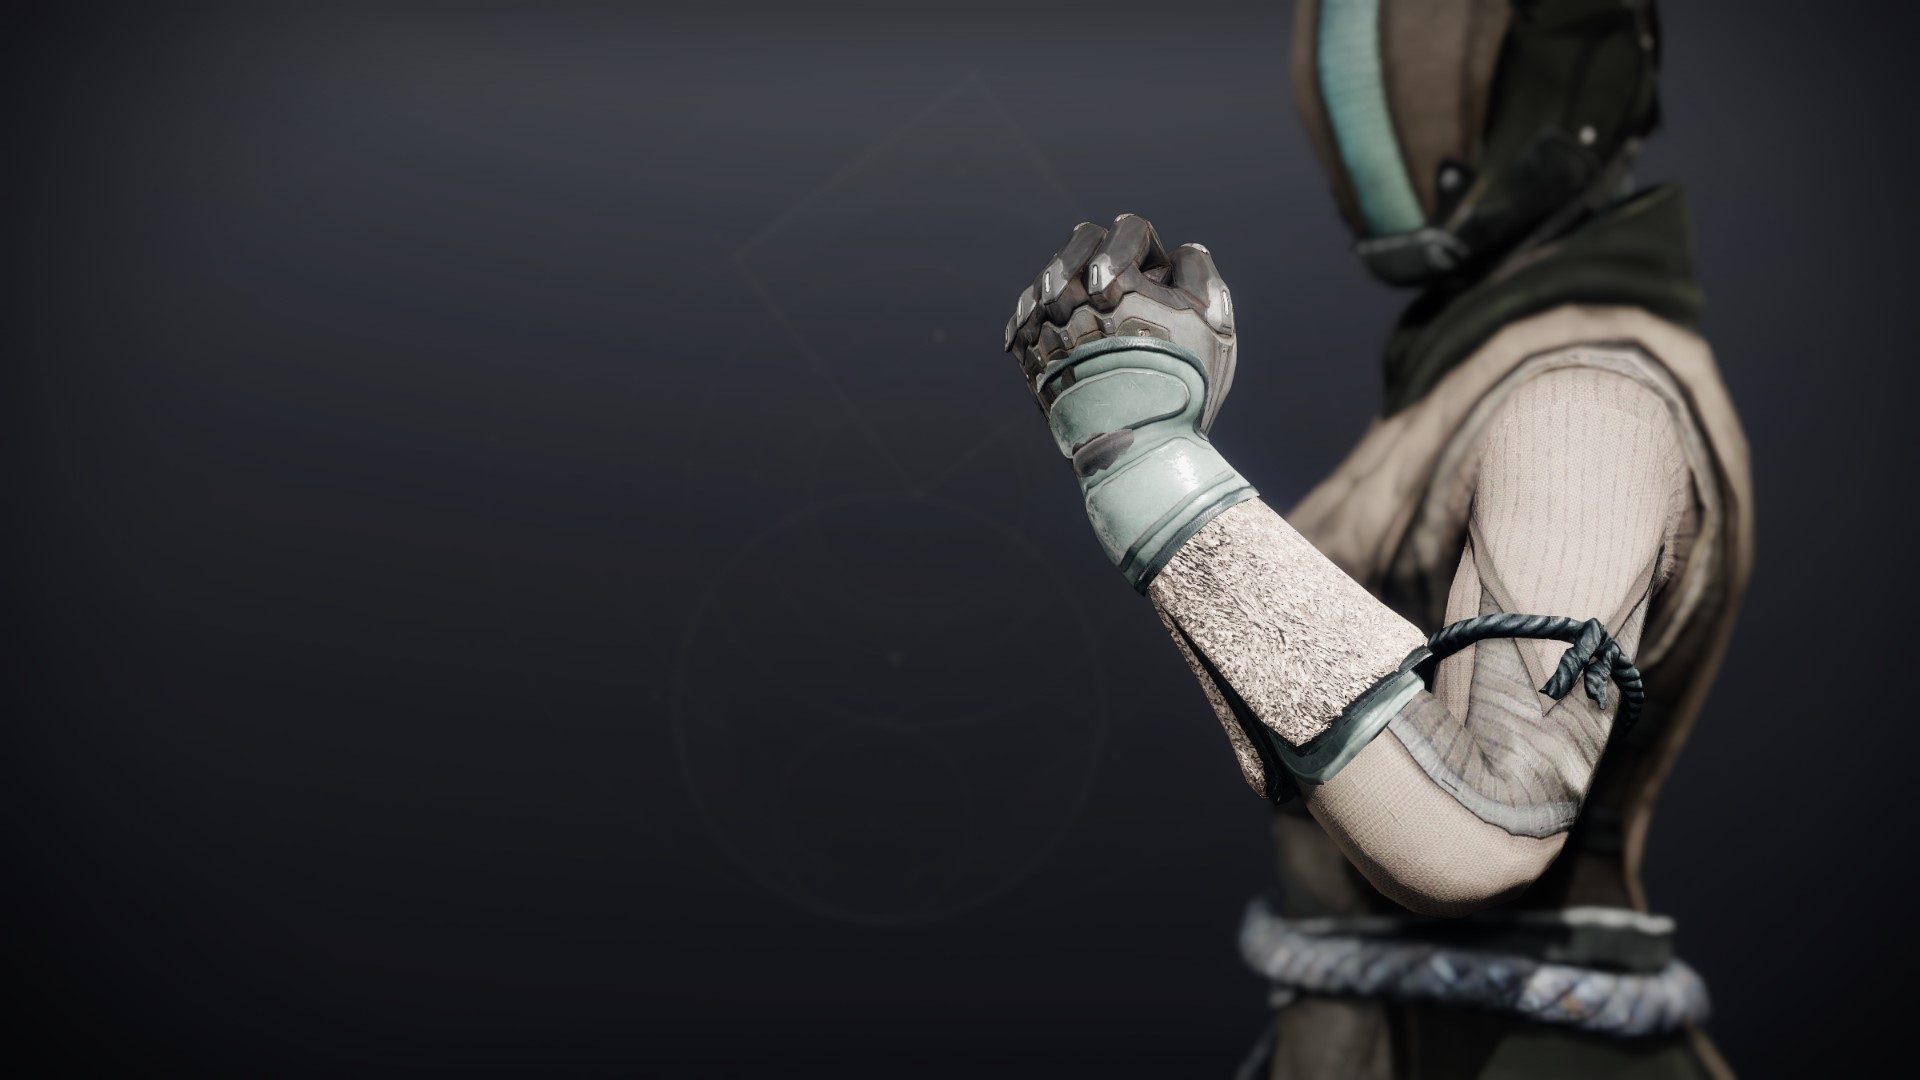 An in-game render of the Crystocrene Gloves.